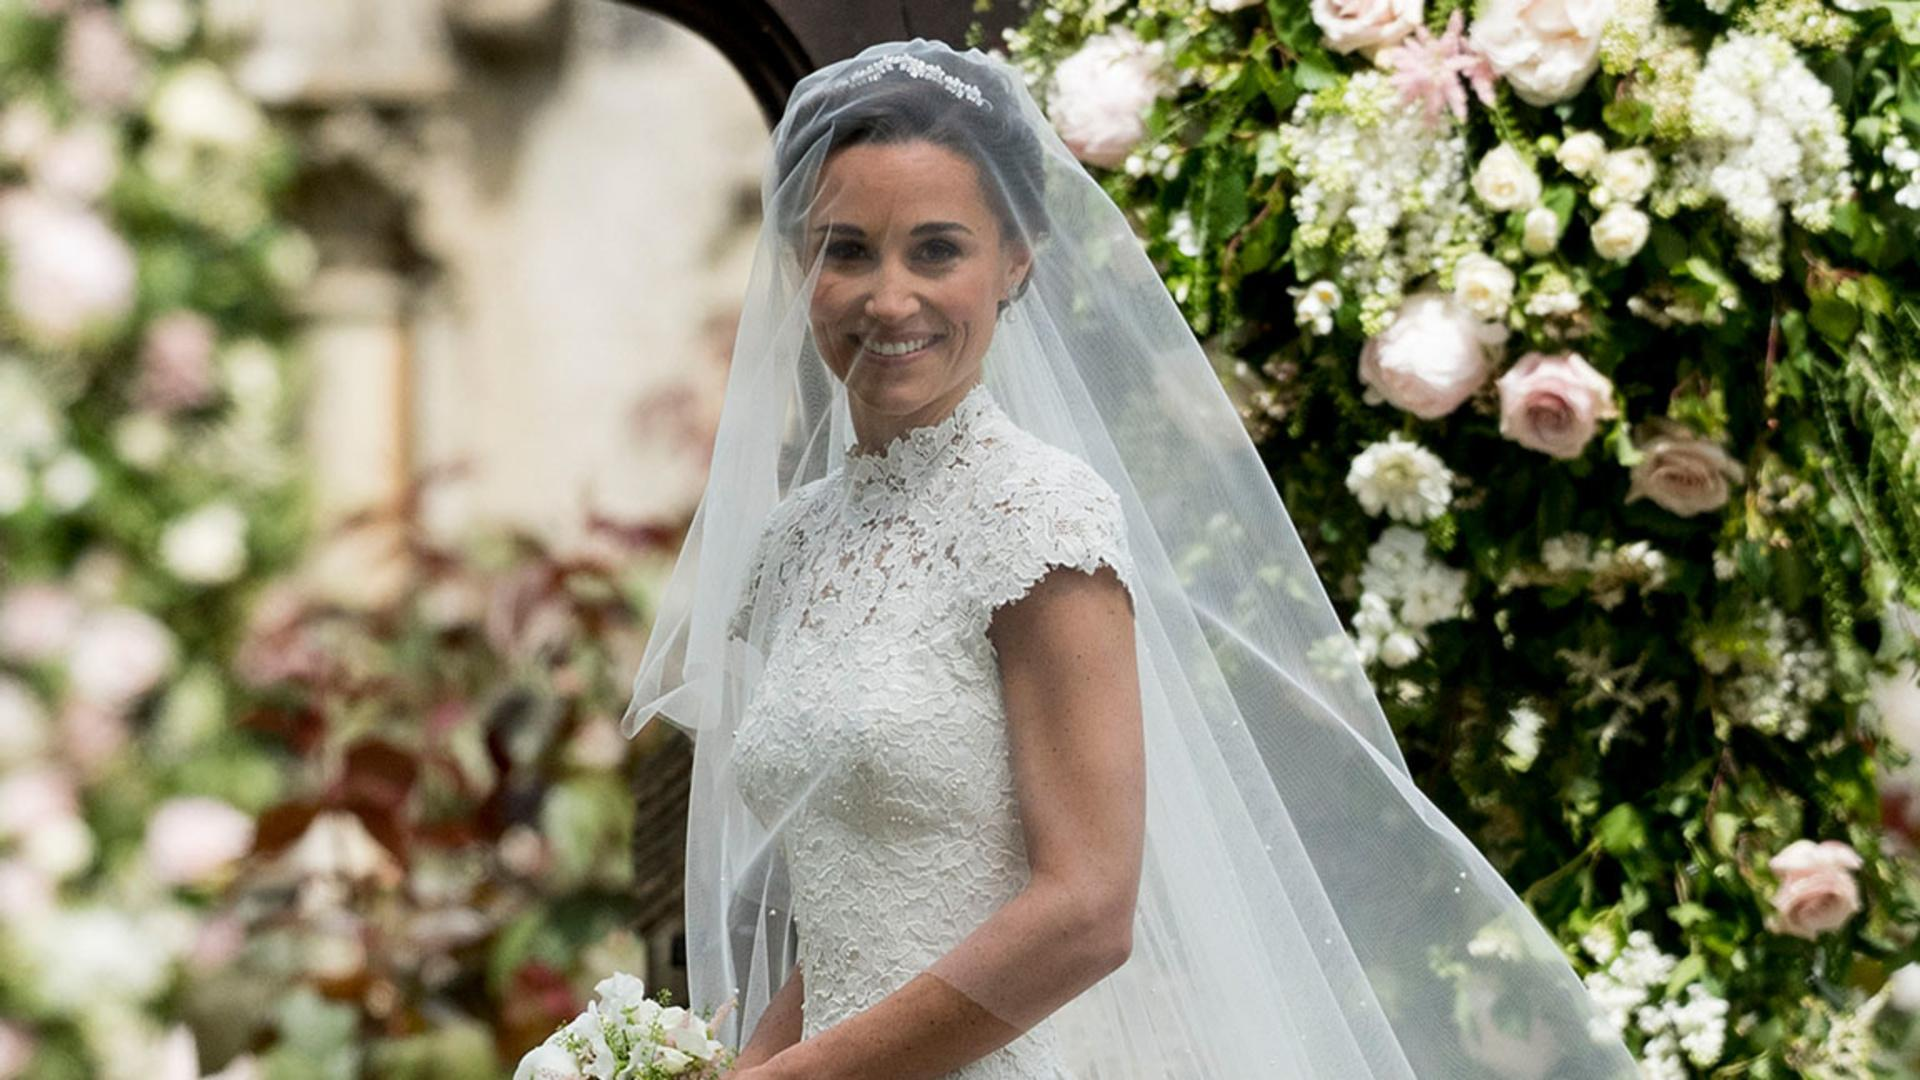 7 Moments from Pippa Middleton's Wedding That Are Exactly the Same as Kate's